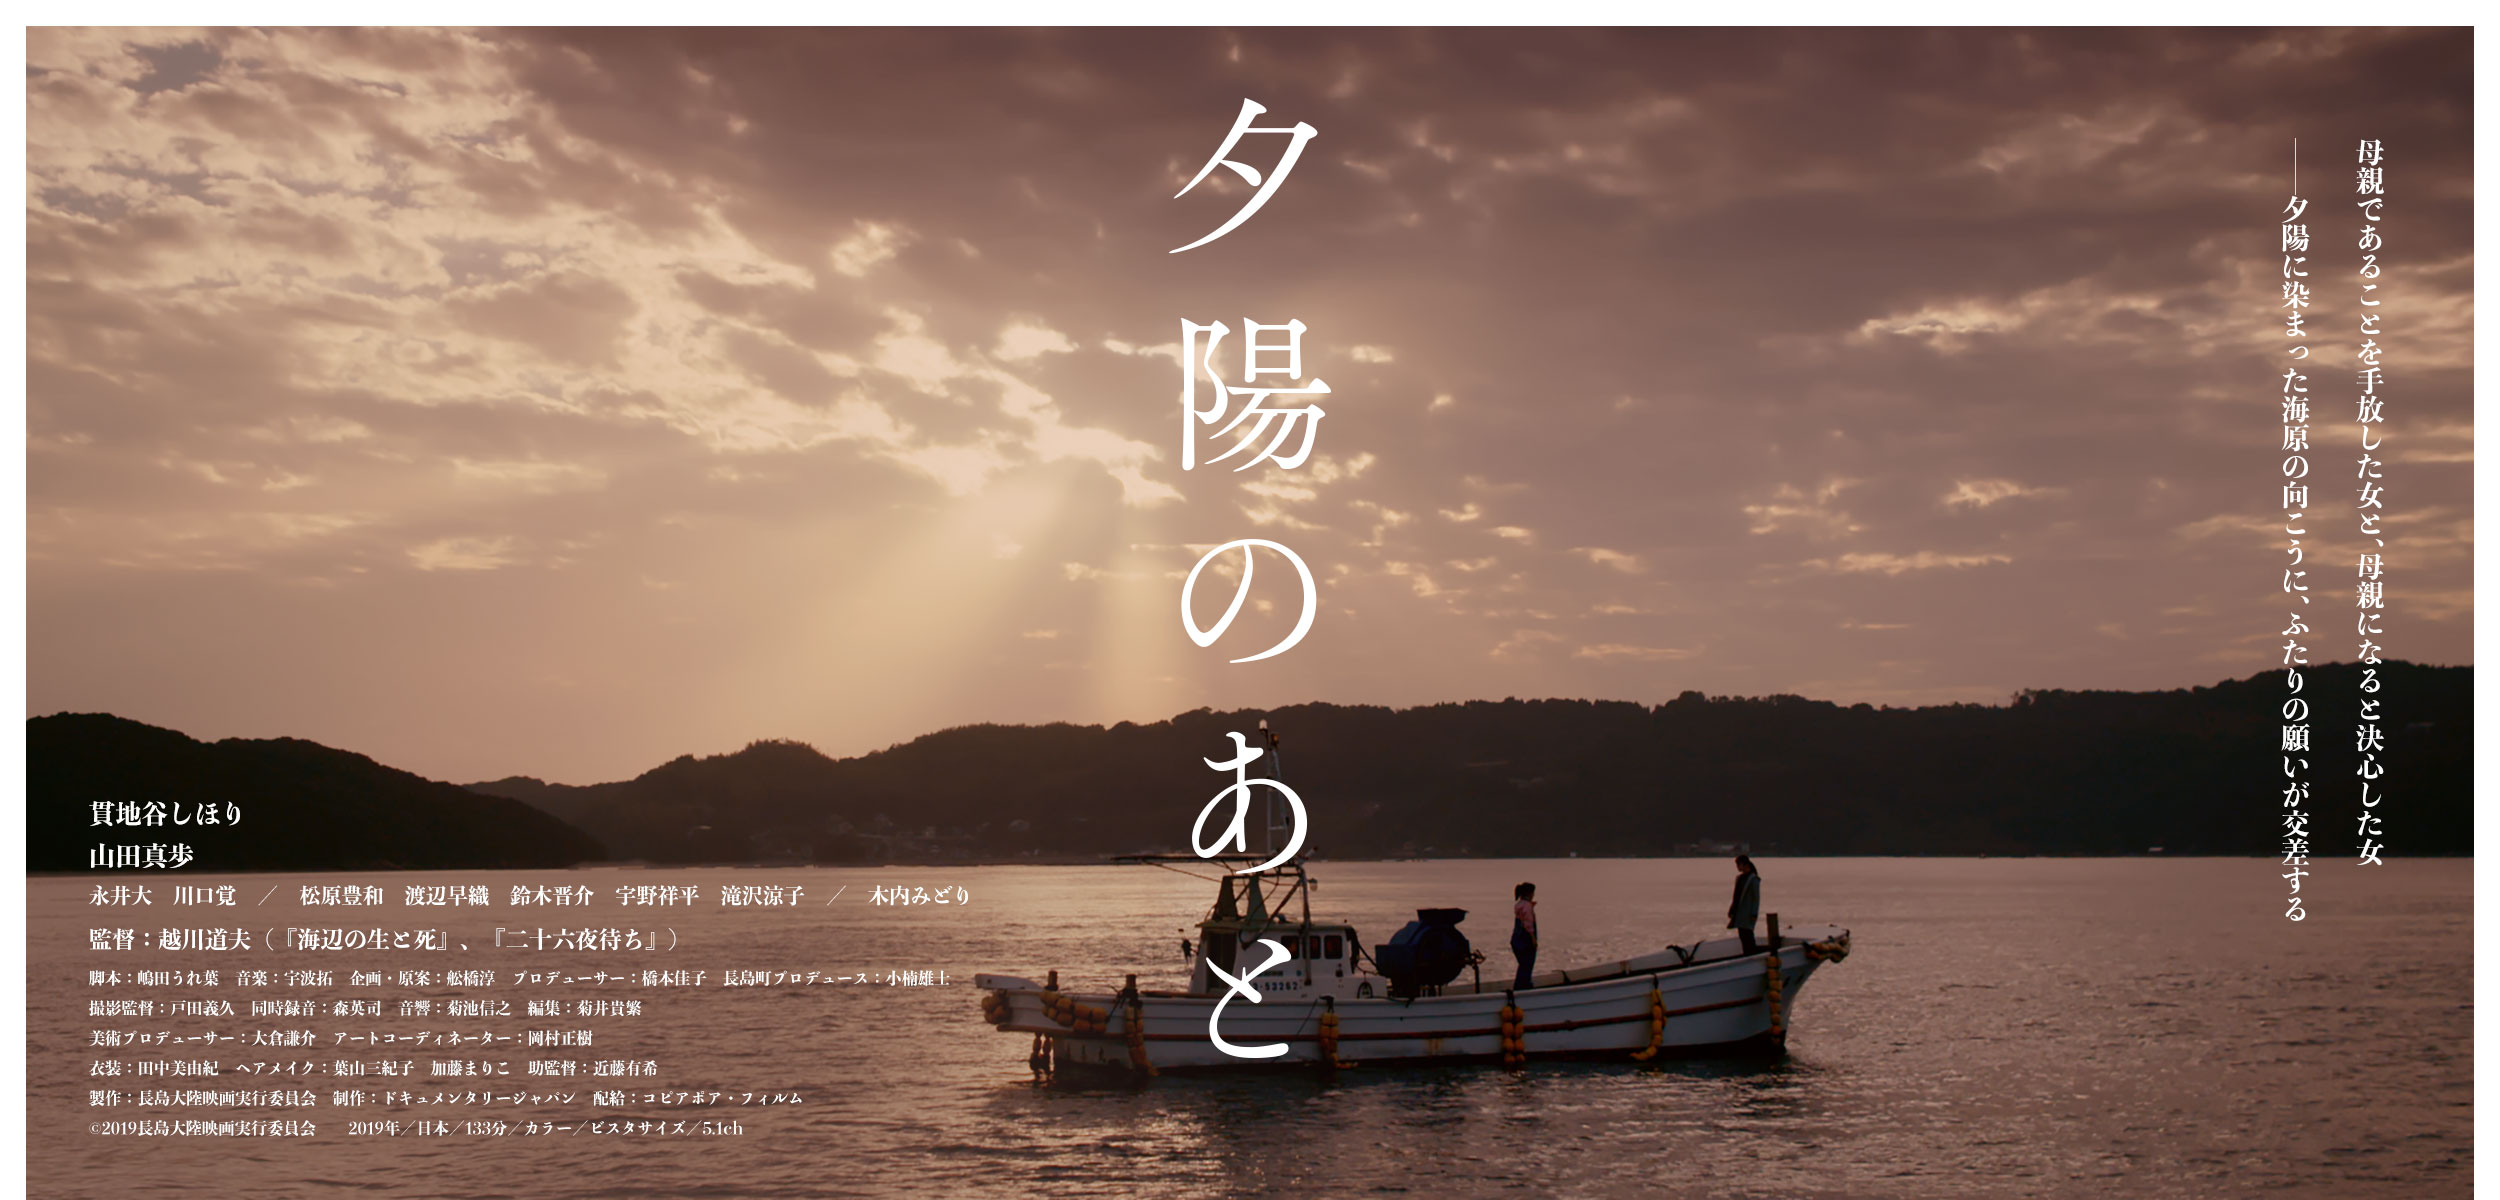 Confessions & Confusions: Review Of Yuhi No Ato